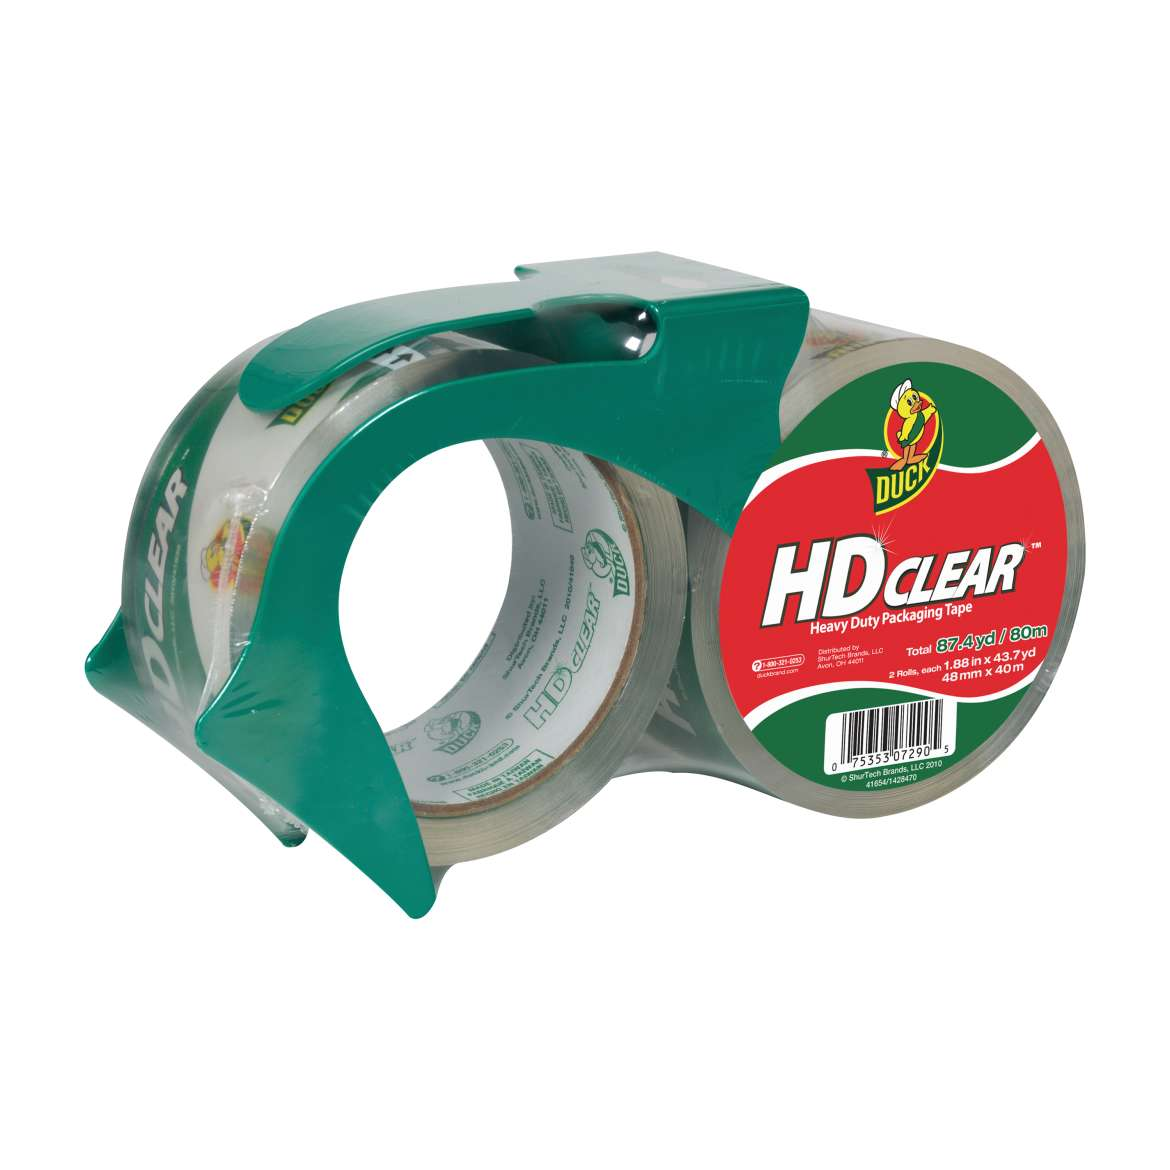 HD Clear™ Heavy Duty Packaging Tape with Dispenser - Clear, 2 pk, 1.88 in. x 43 yd. Image